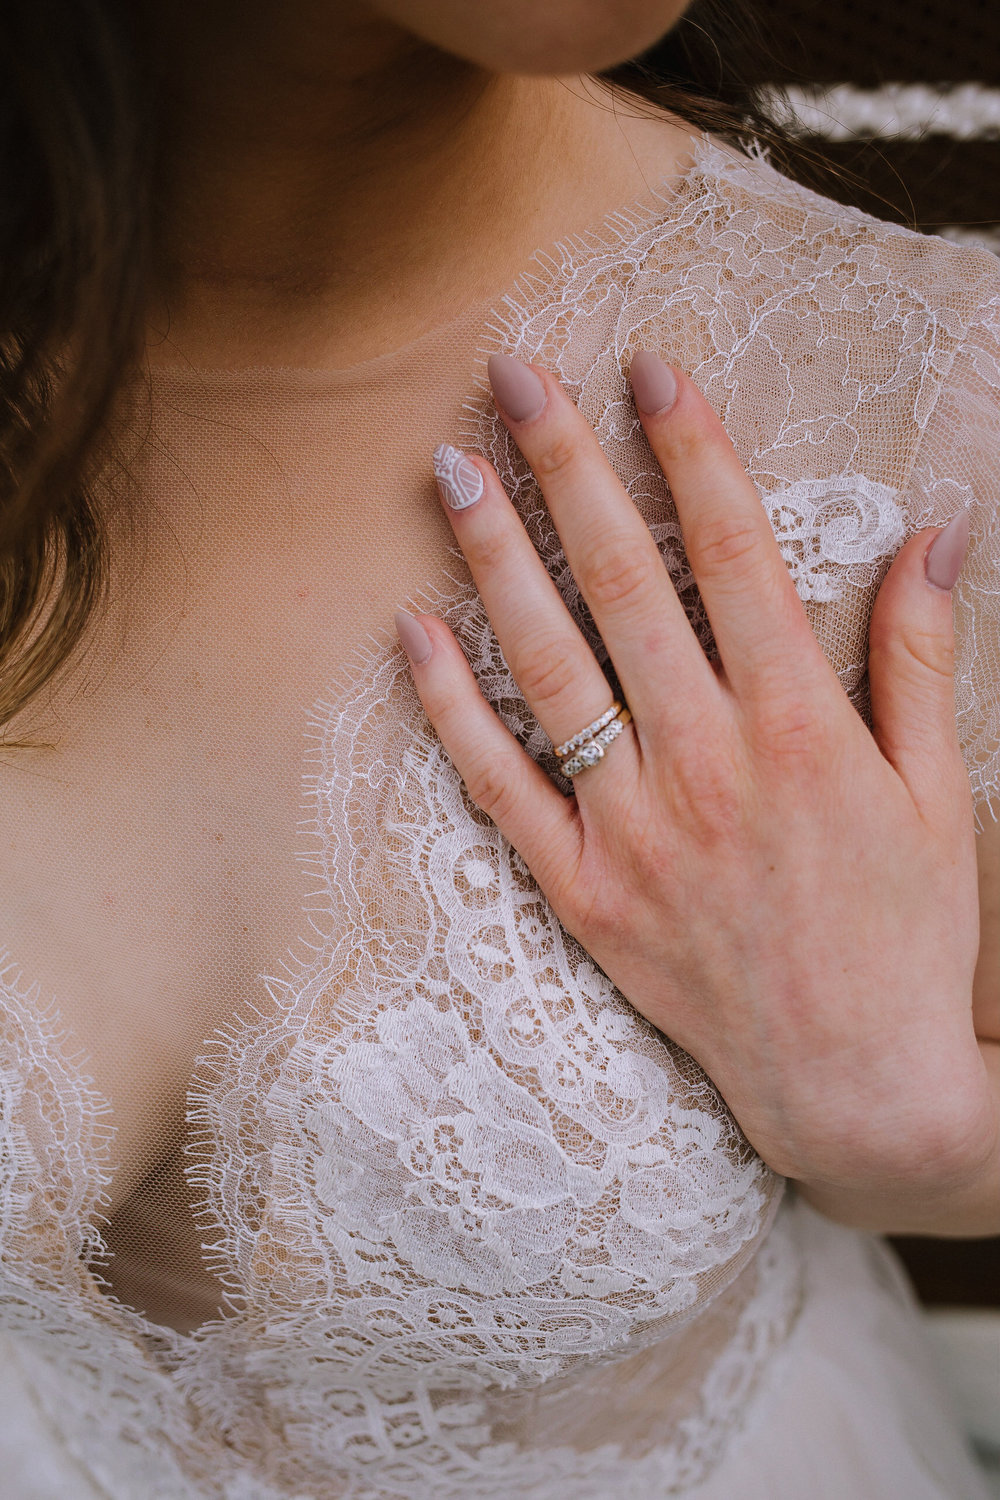 Bohemian wedding at Chatham University, Eden Hall Farm designed by Exhale Events. Bride's look from Blanc de Blanc Bridal, Melissa Gown by Divine Atelier. Nail art by Manikure PGH.